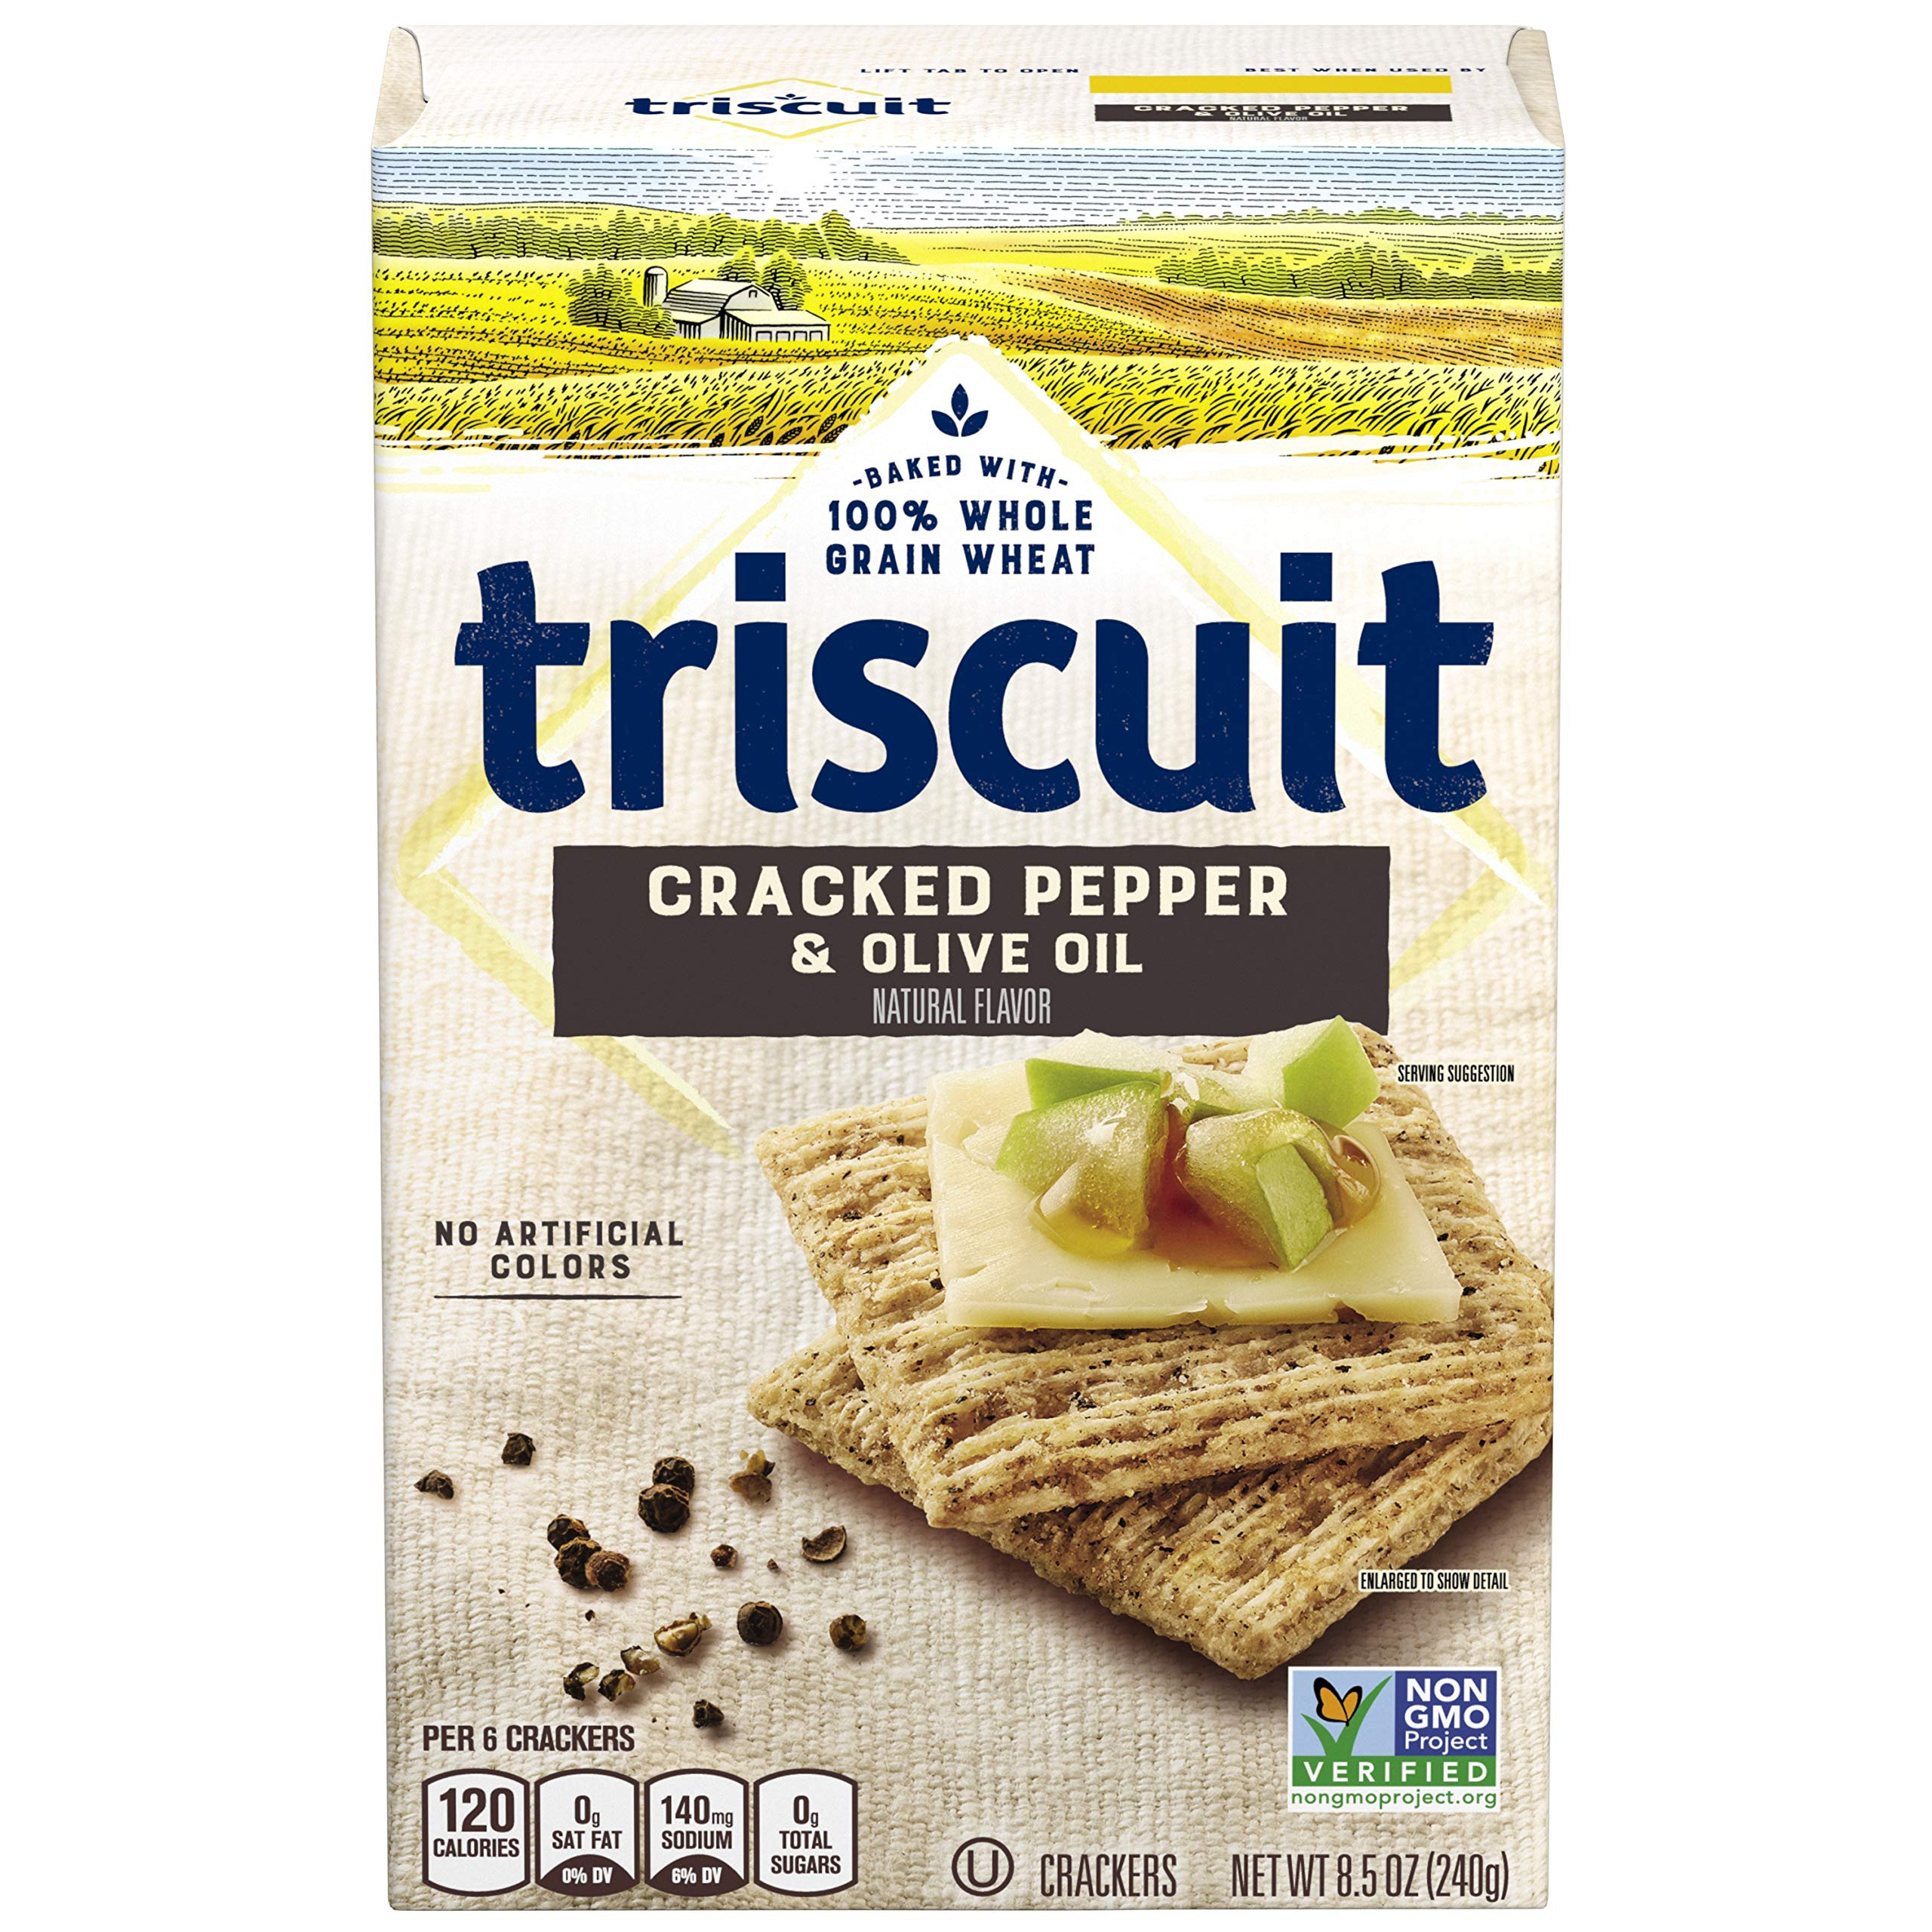 Triscuit Cracked Pepper and Olive Oil Crackers, Non-GMO, 8.5 Ounce (Pack of 6)